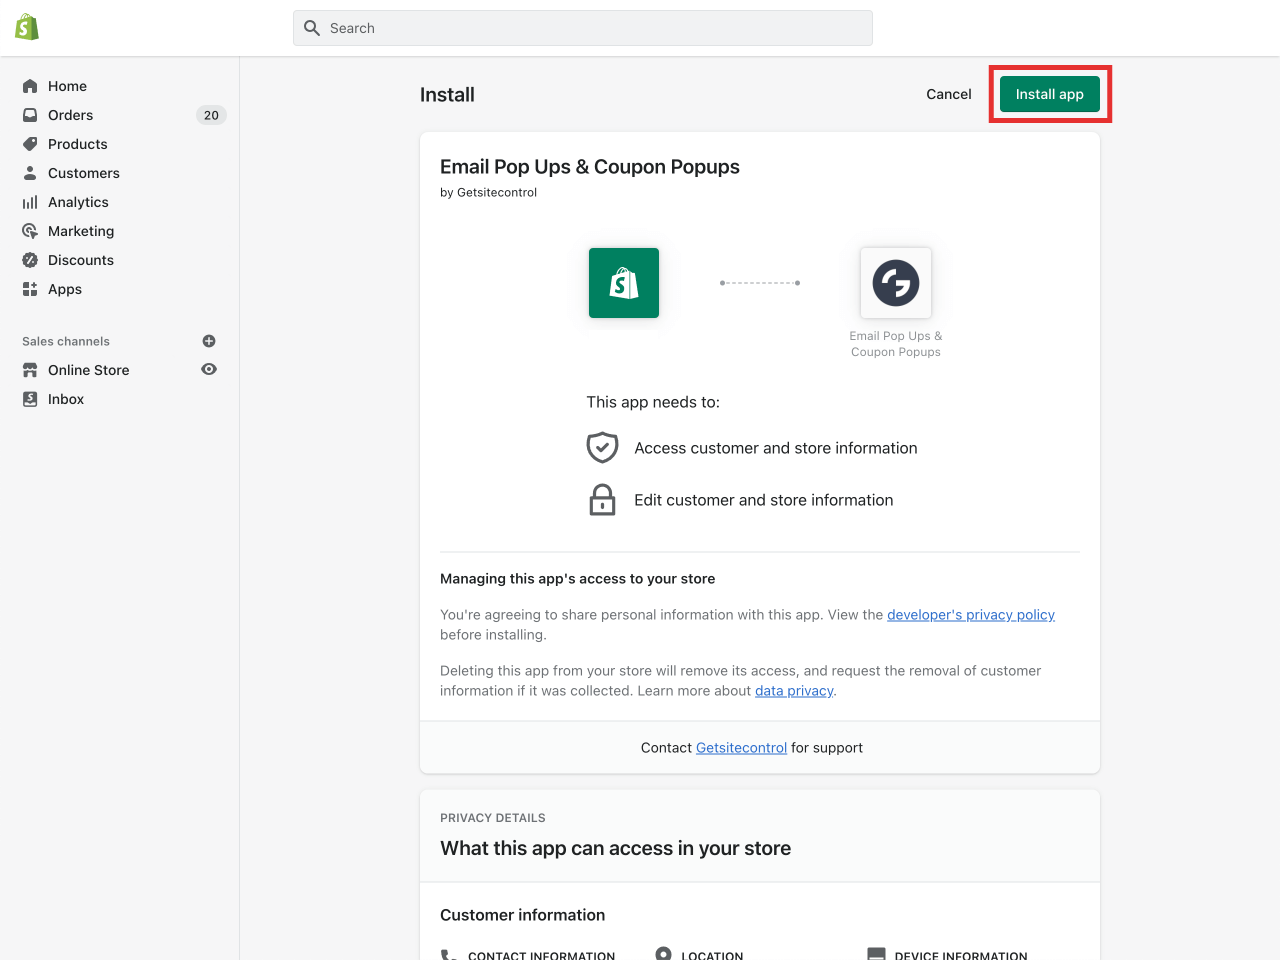 Shopify confirm app installation page